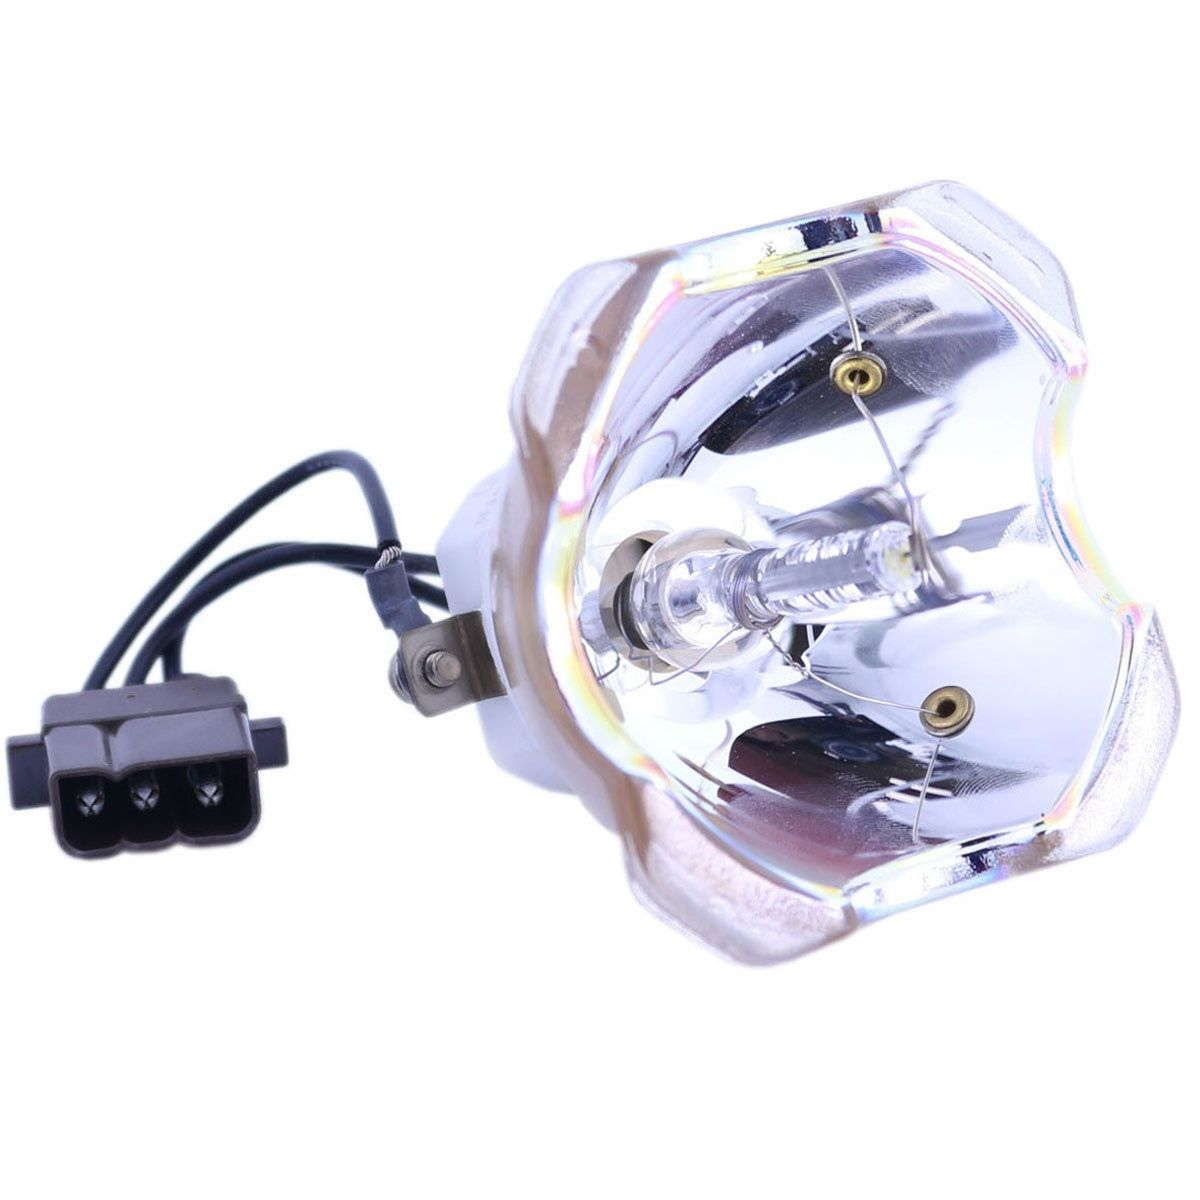 Compatible Bare Bulb 003-120507-01 for CHRISTIE LW555/LWU505/LX605 Projector Lamp Bulb without housing